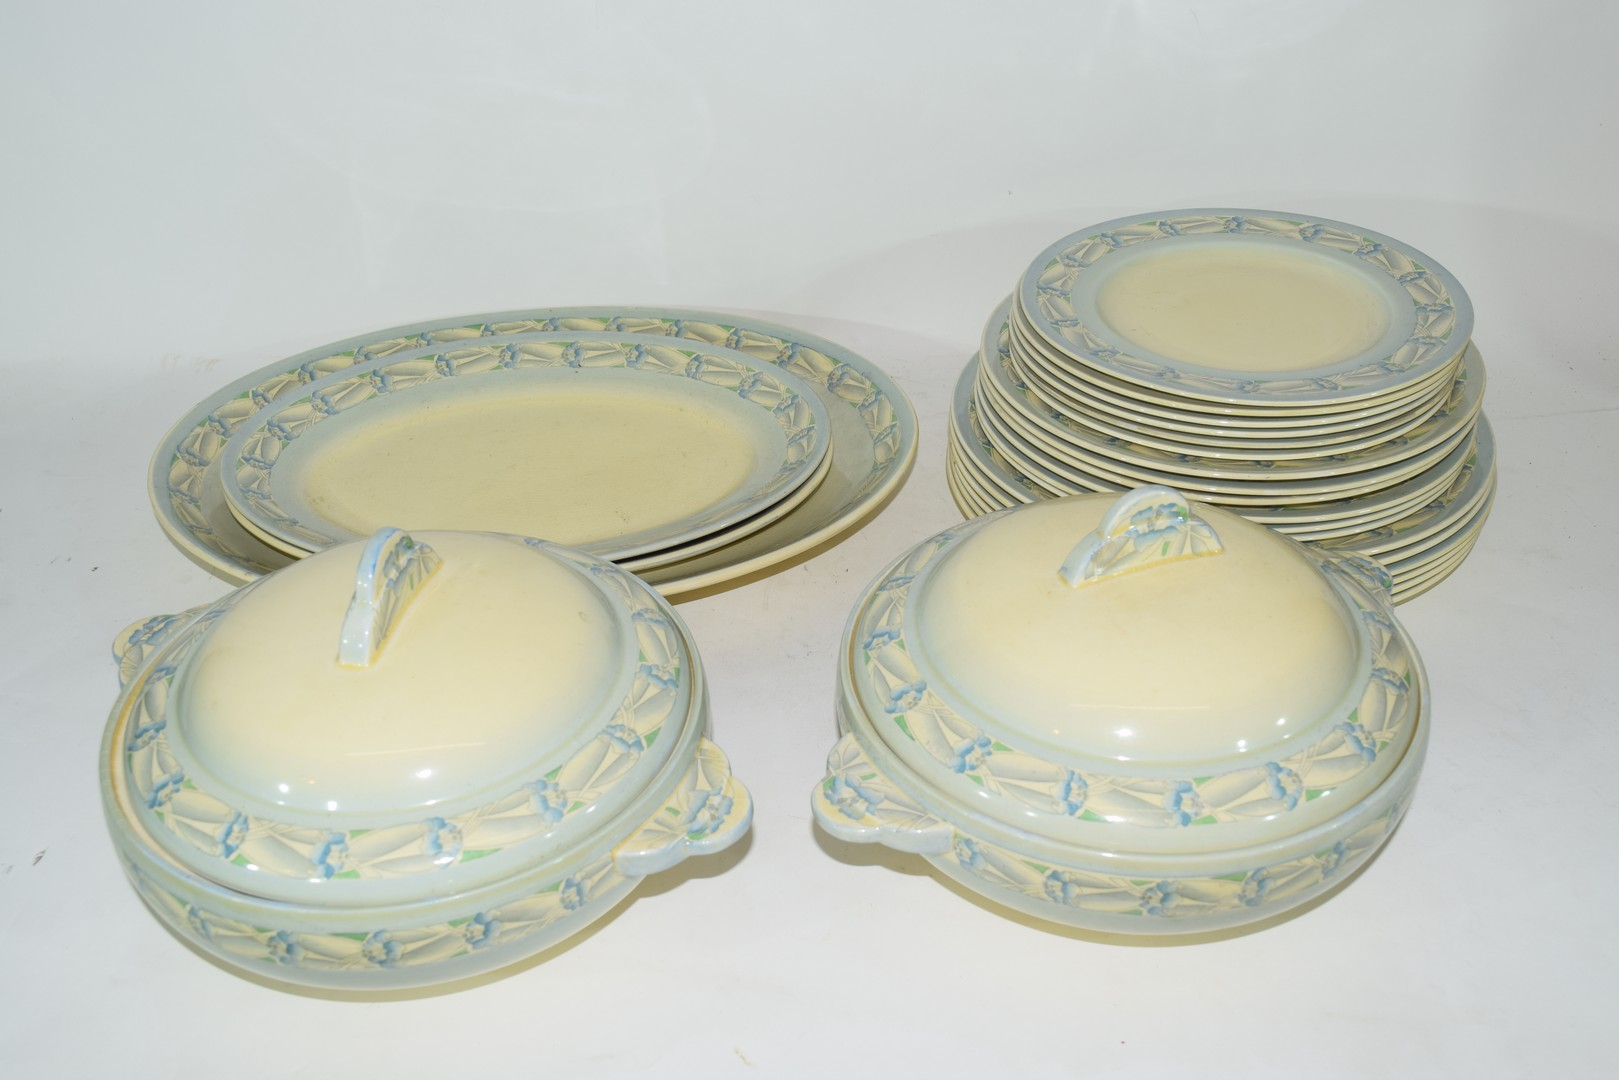 Clarice Cliff Newport pottery part dinner service comprising, two vegetable tureens, two oval meat